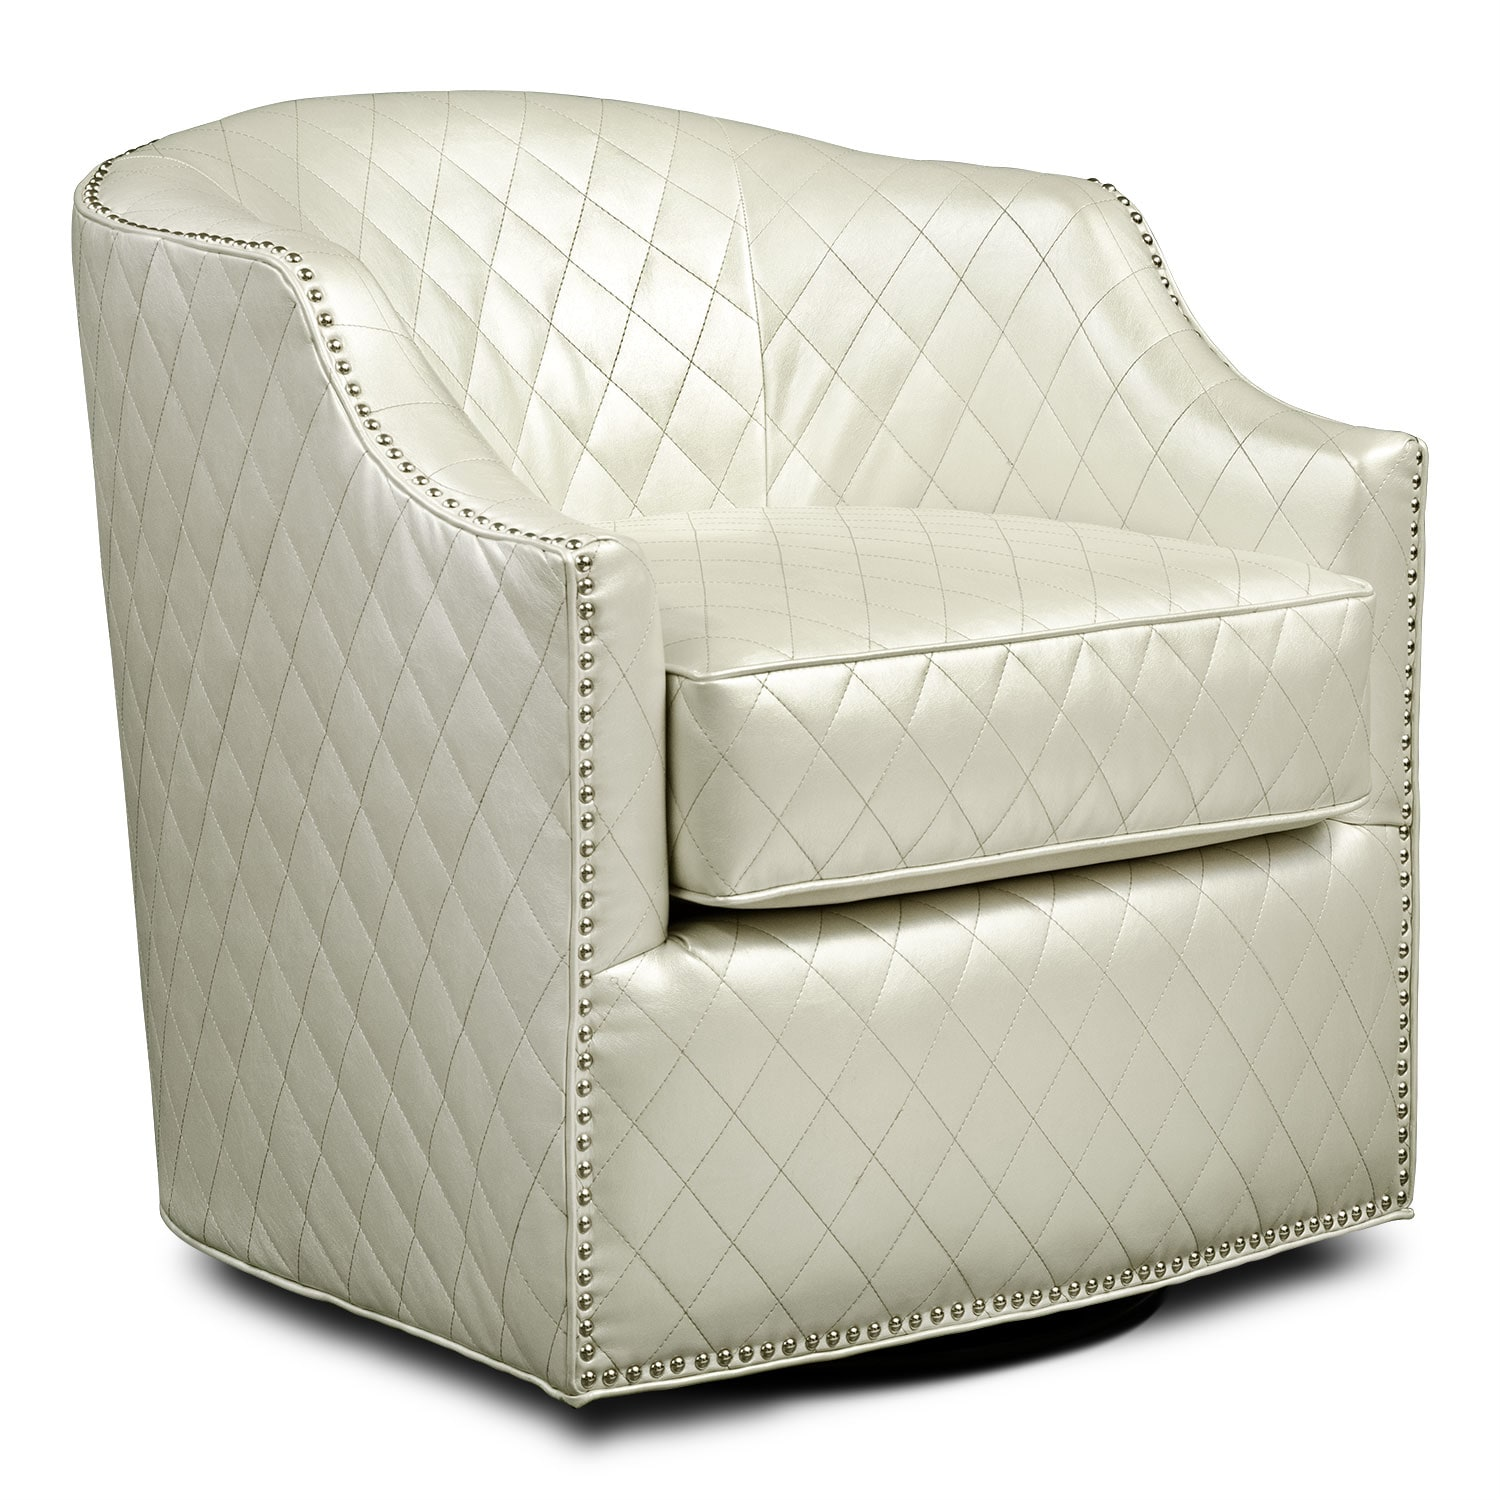 Bedroom Furniture - Roxie Swivel Chair - Pearl